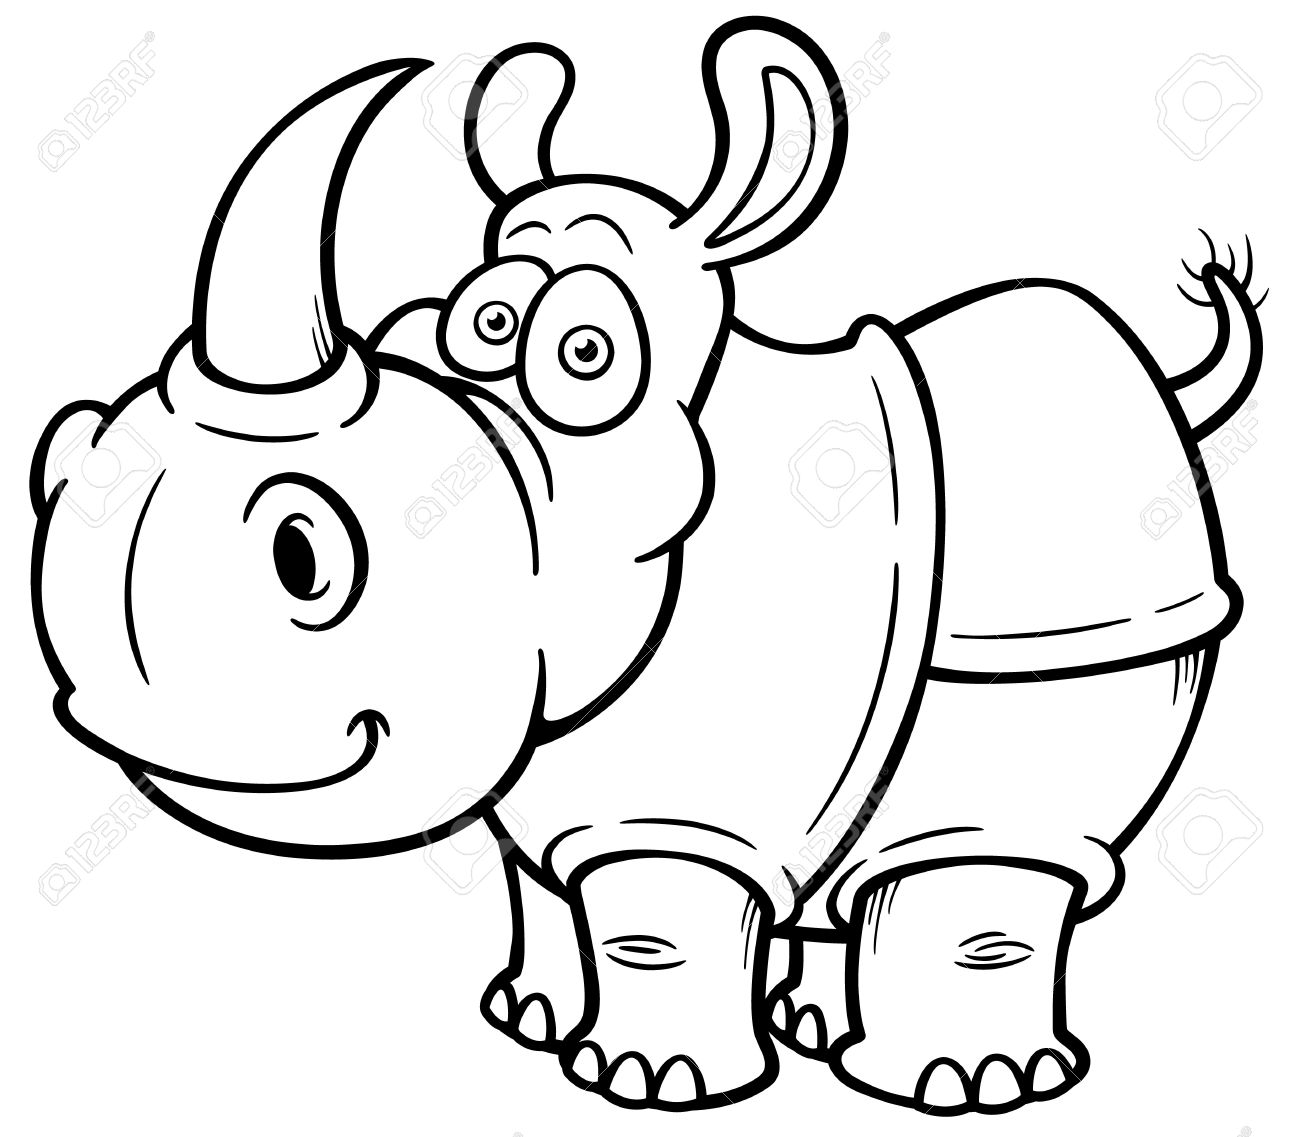 illustration of cartoon rhino coloring book royalty free